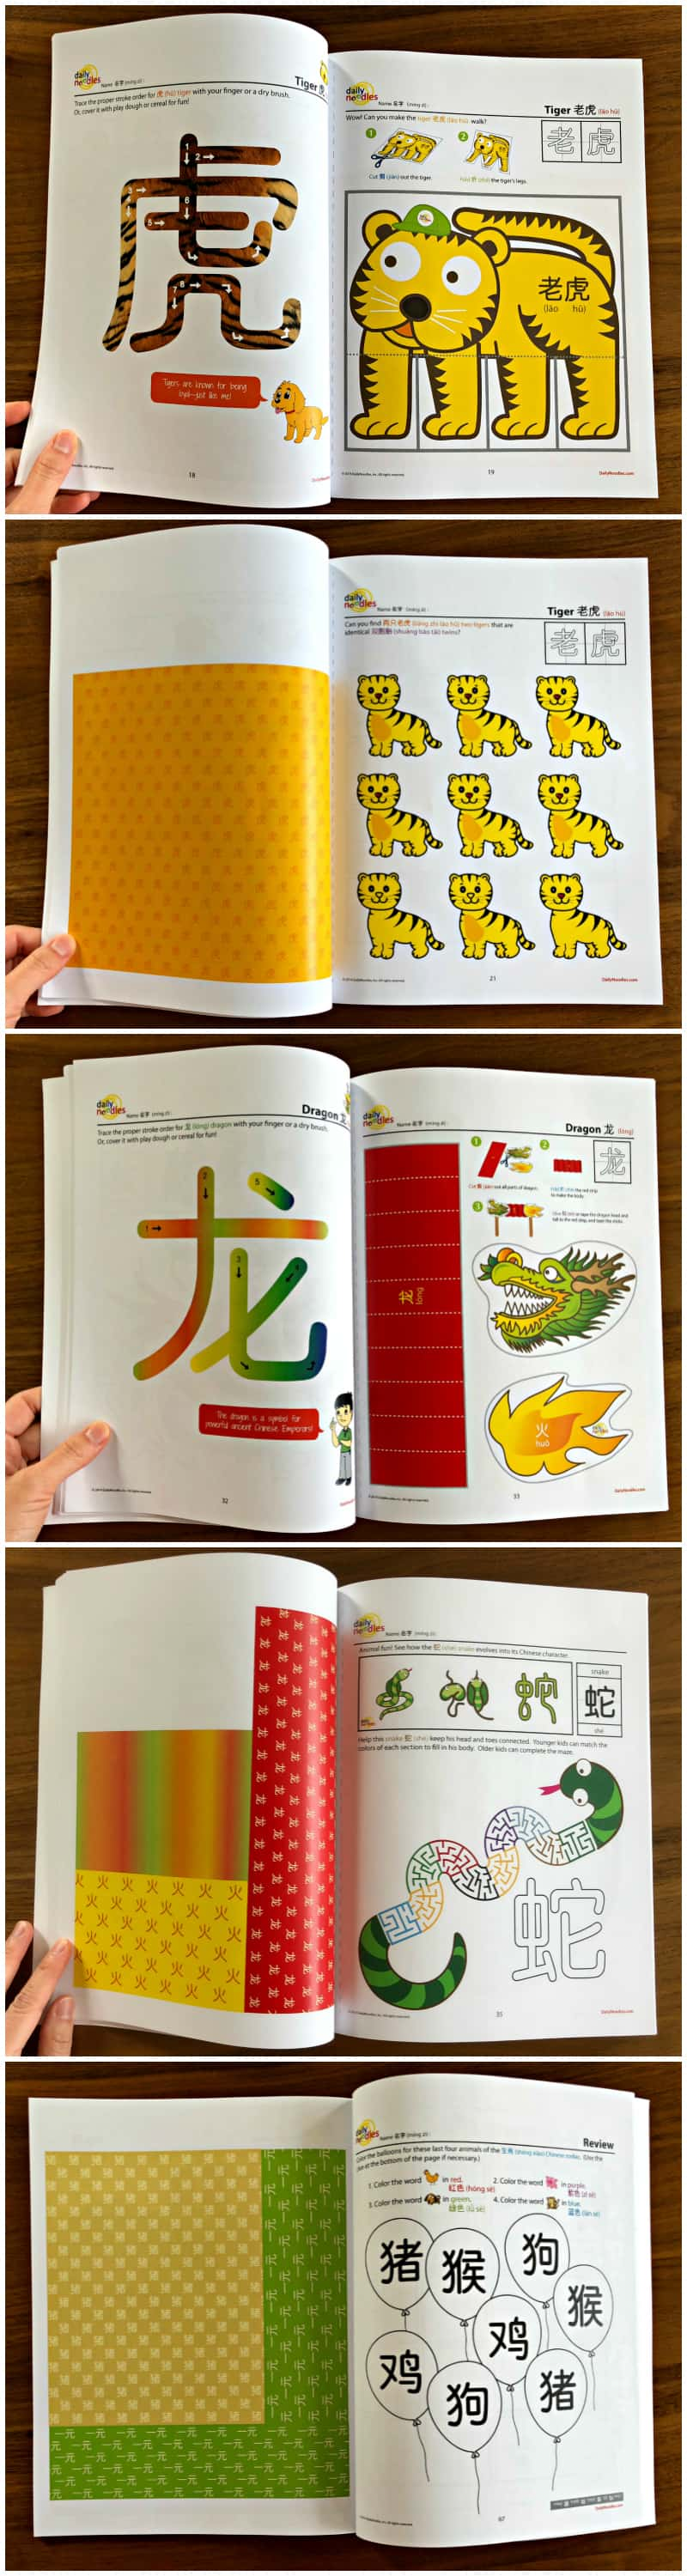 Daily Noodles Chinese Animal Activity Books